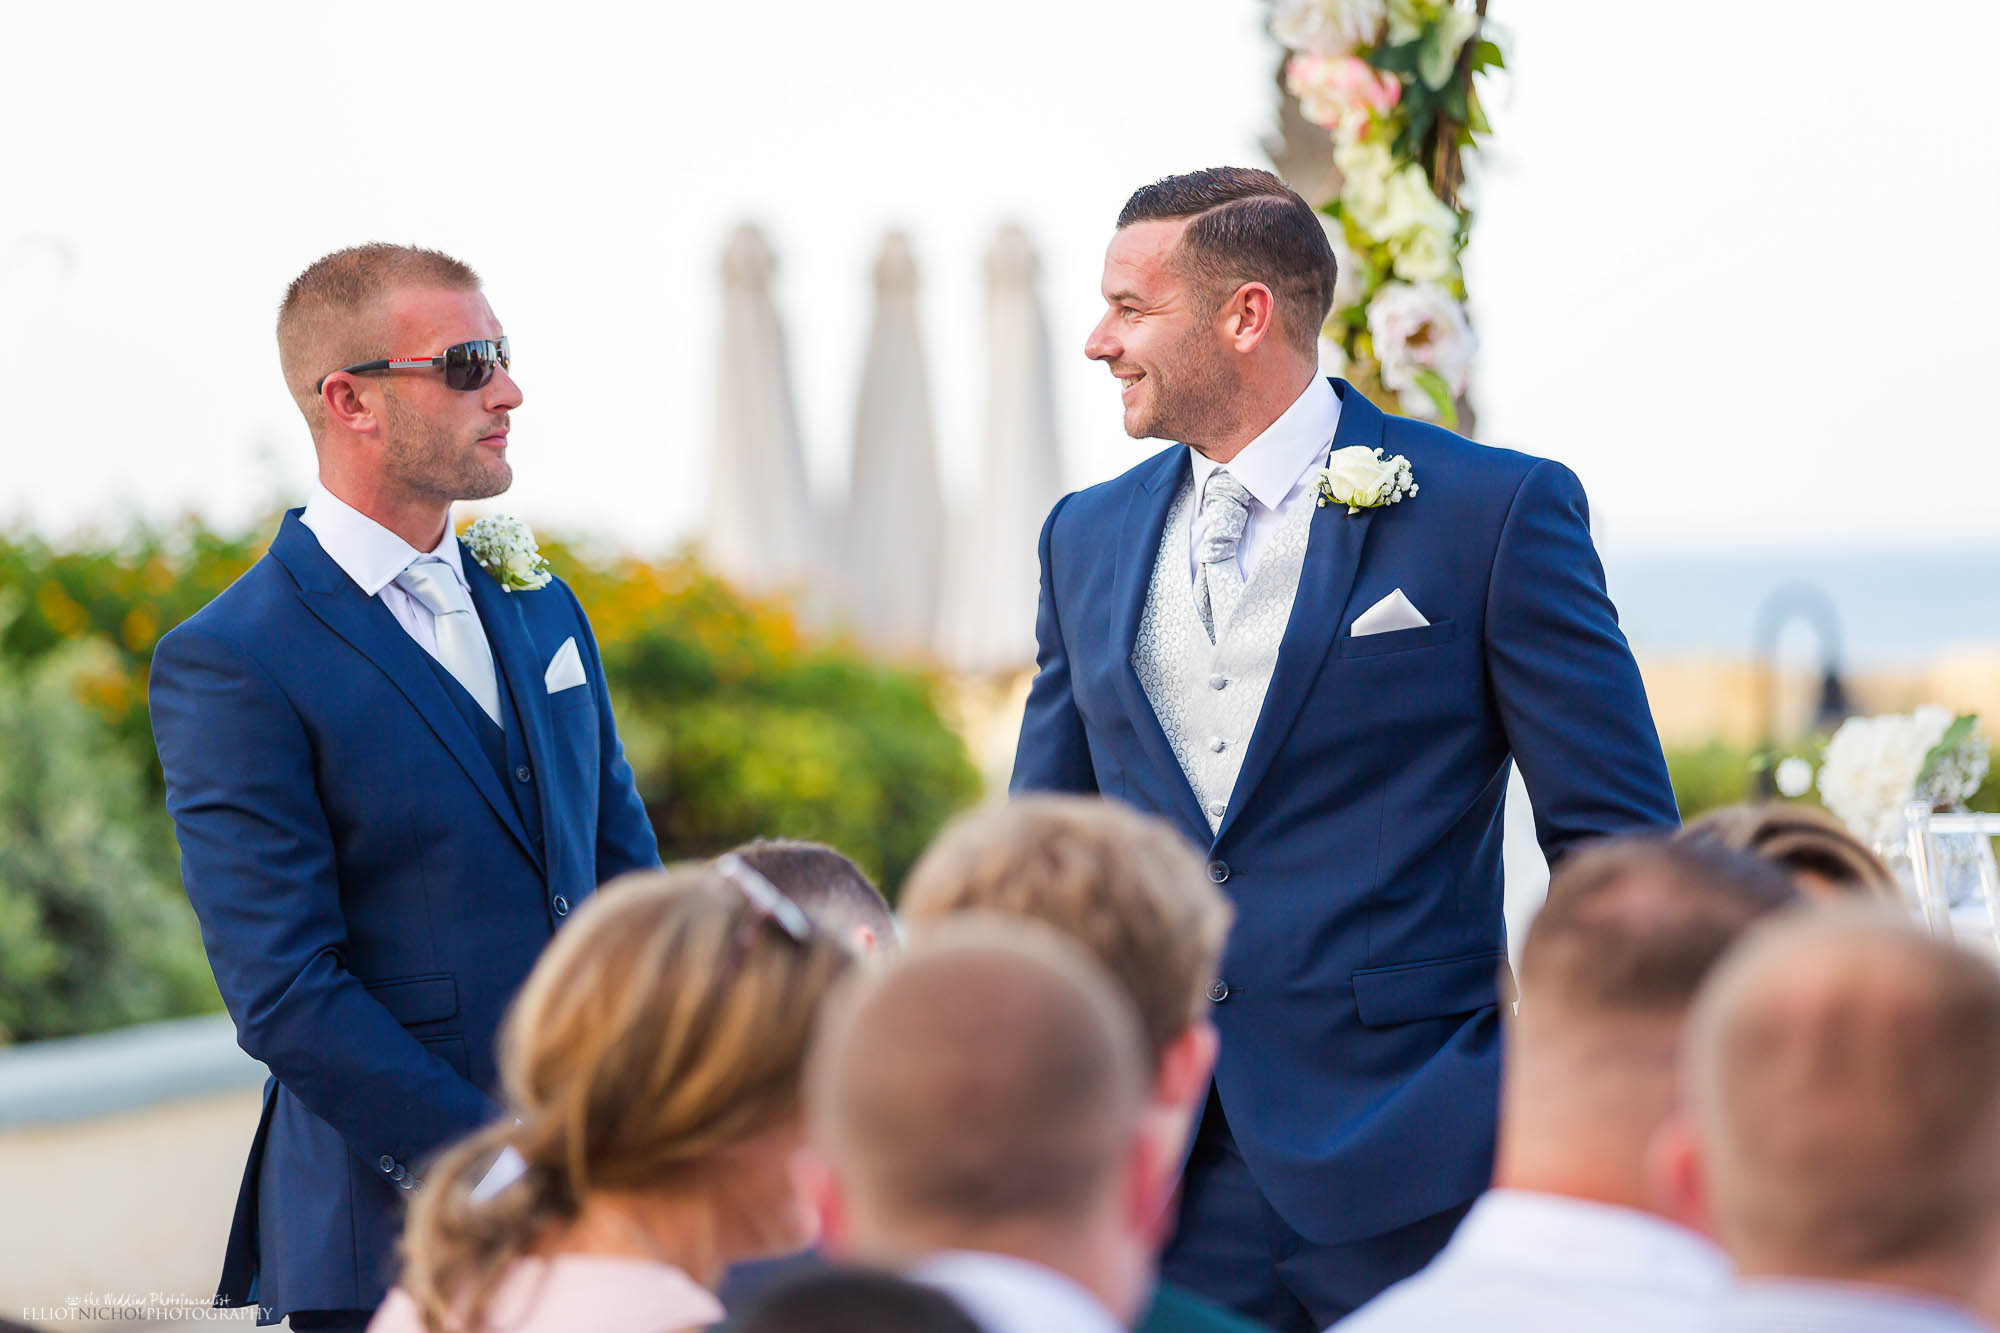 Groom with his Bestman before the wedding ceremony. Northeast wedding photography by Elliot Nichol.